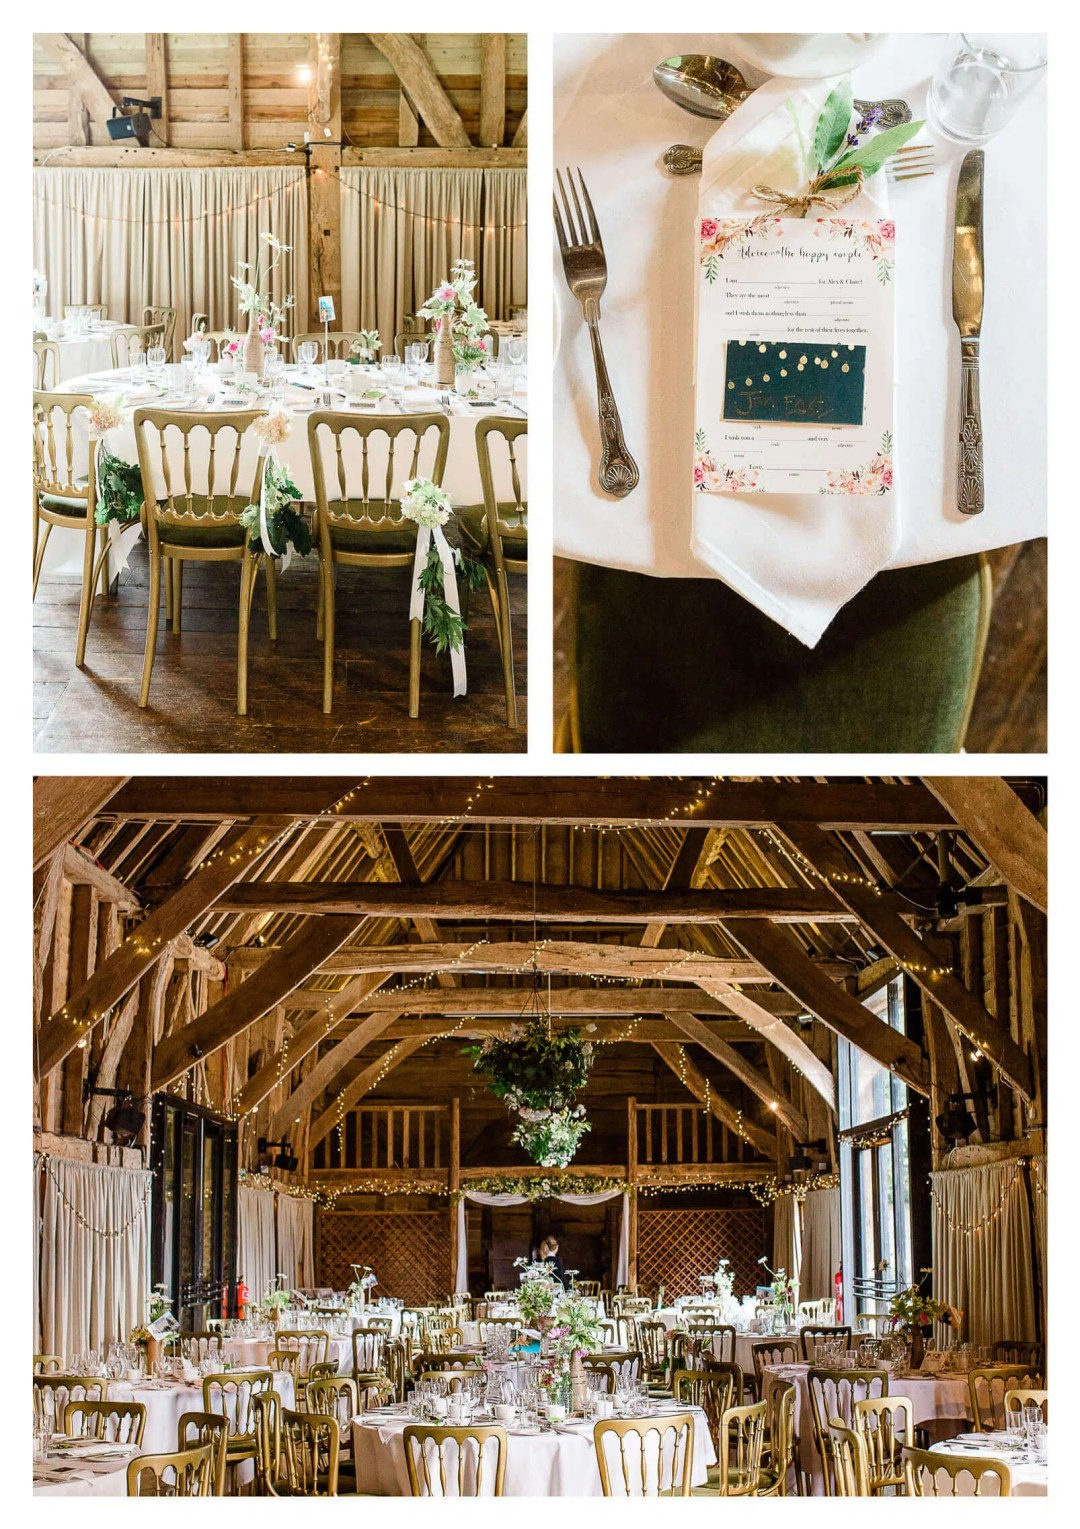 Michelham Priory Barn wedding breakfast details with green and gold chairs | East Sussex Wedding Photographer in Hailsham